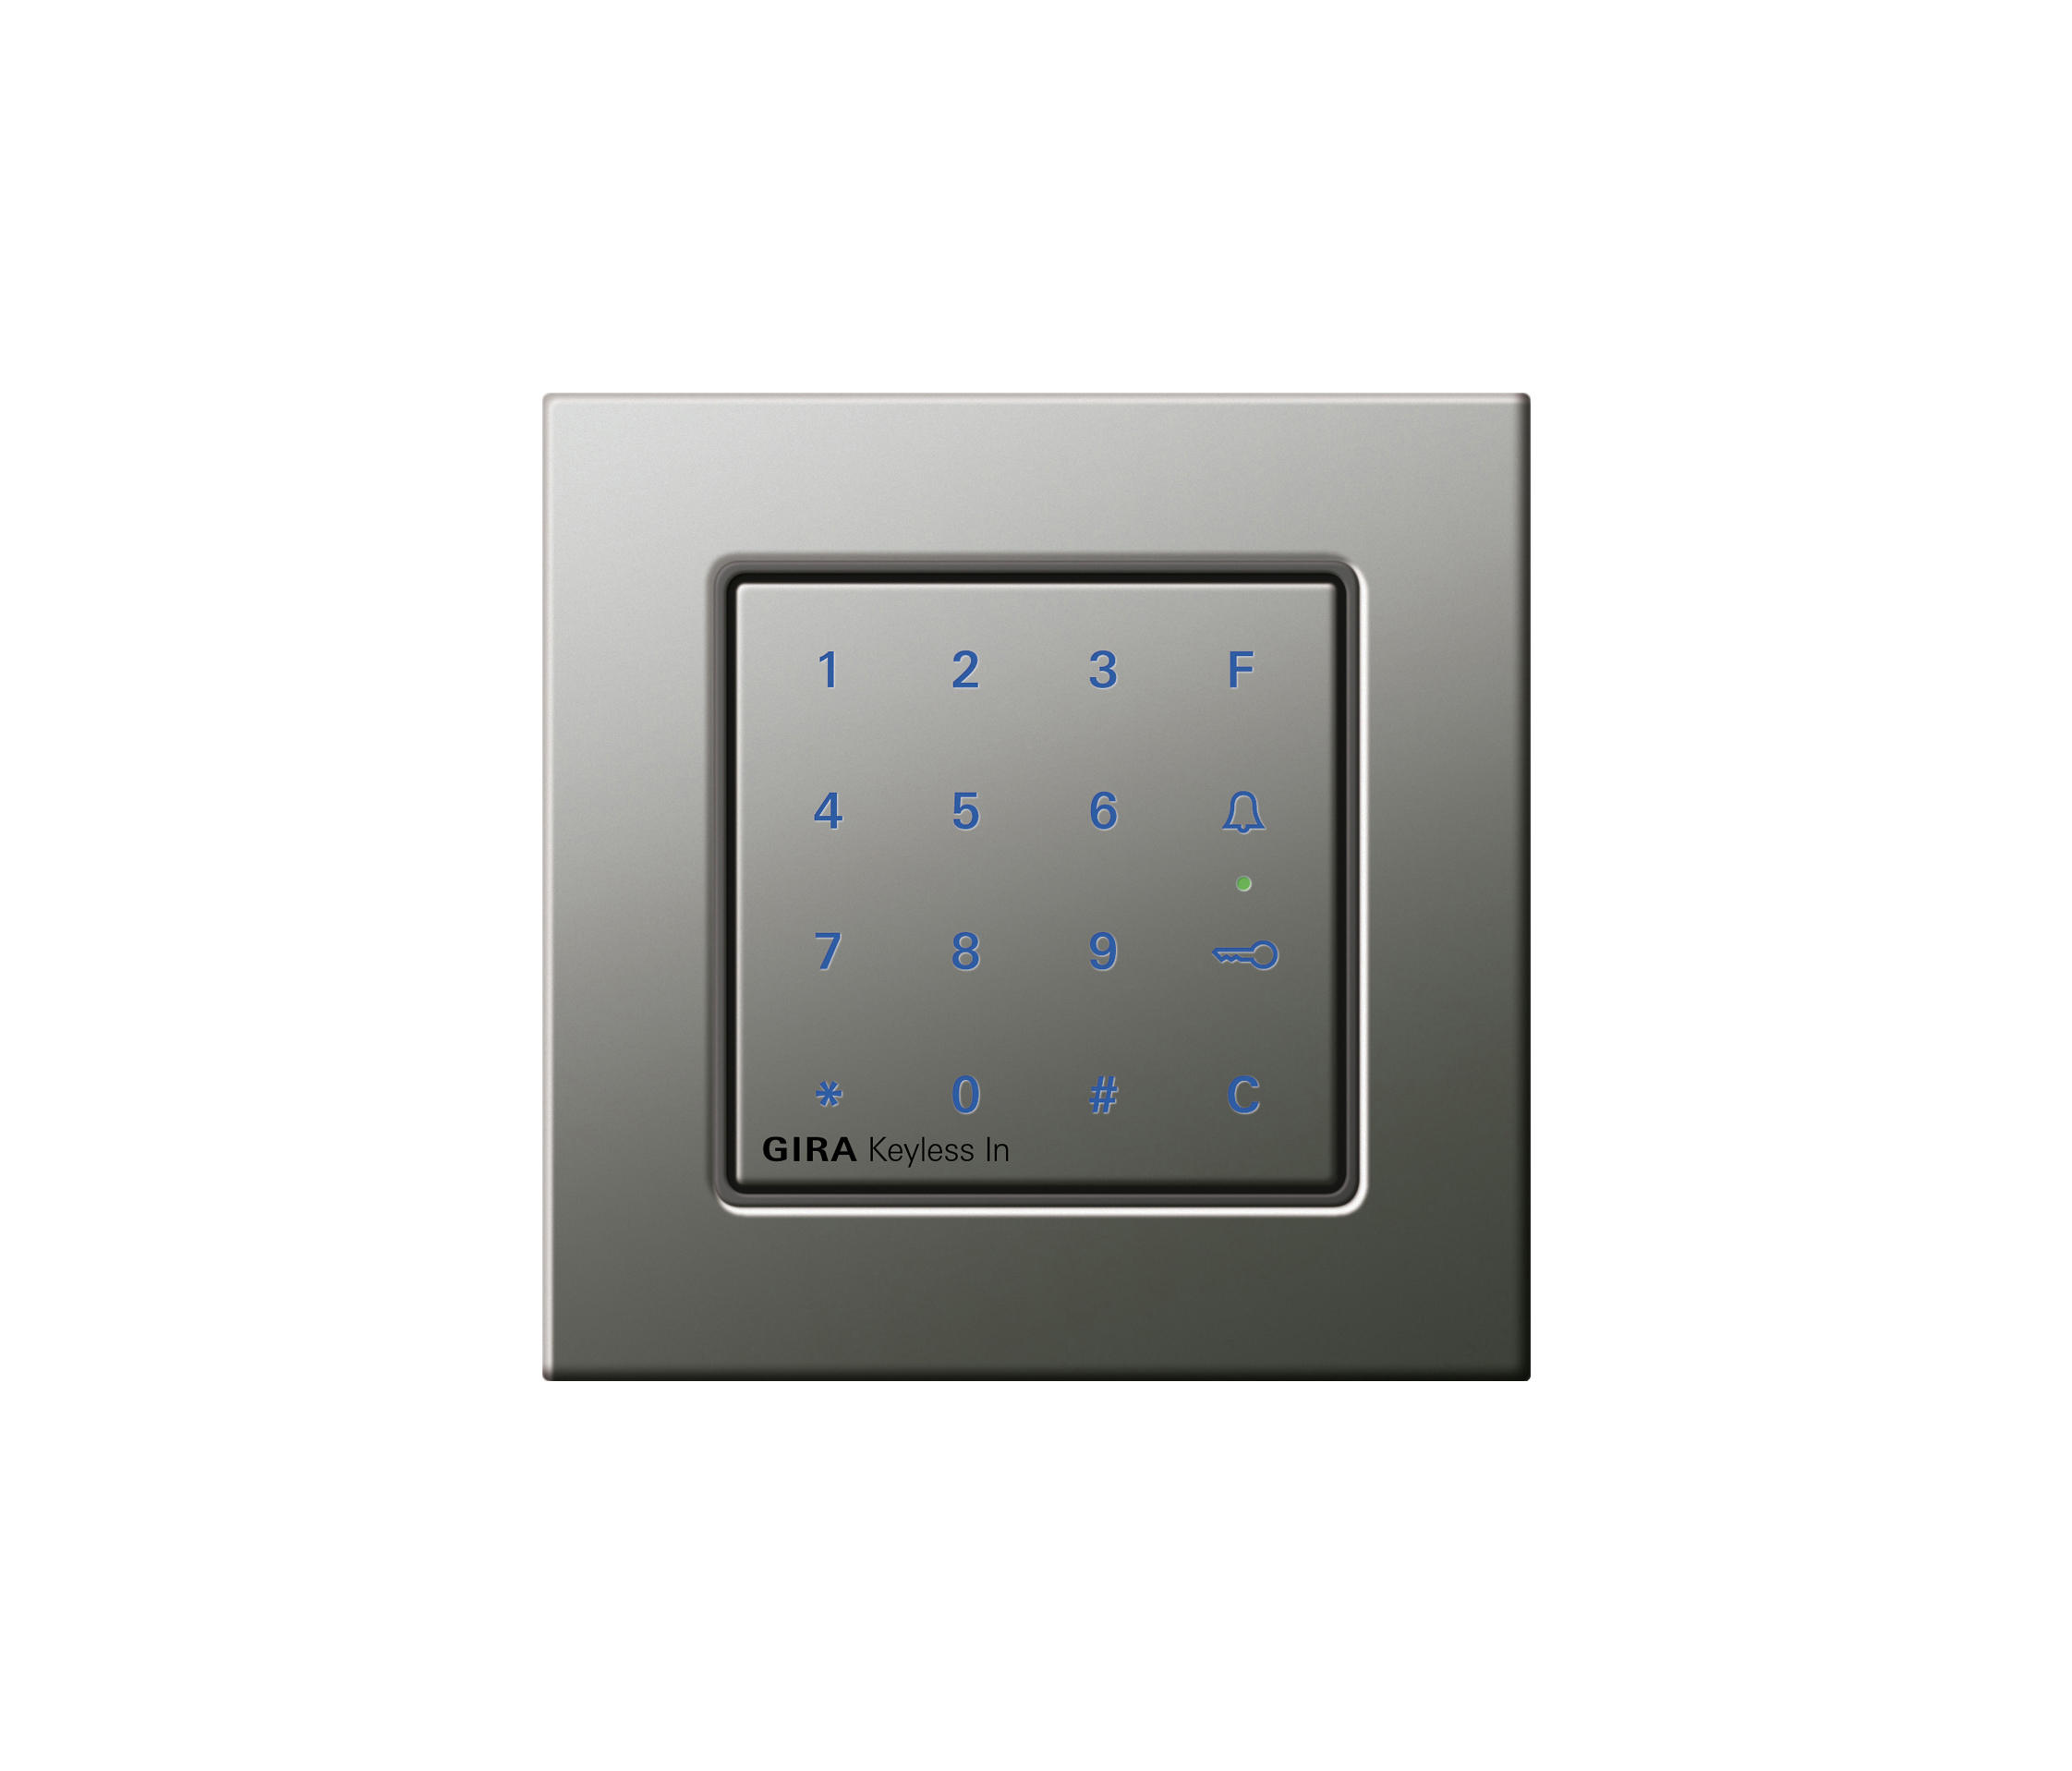 e22 keyless in code locks from gira architonic. Black Bedroom Furniture Sets. Home Design Ideas